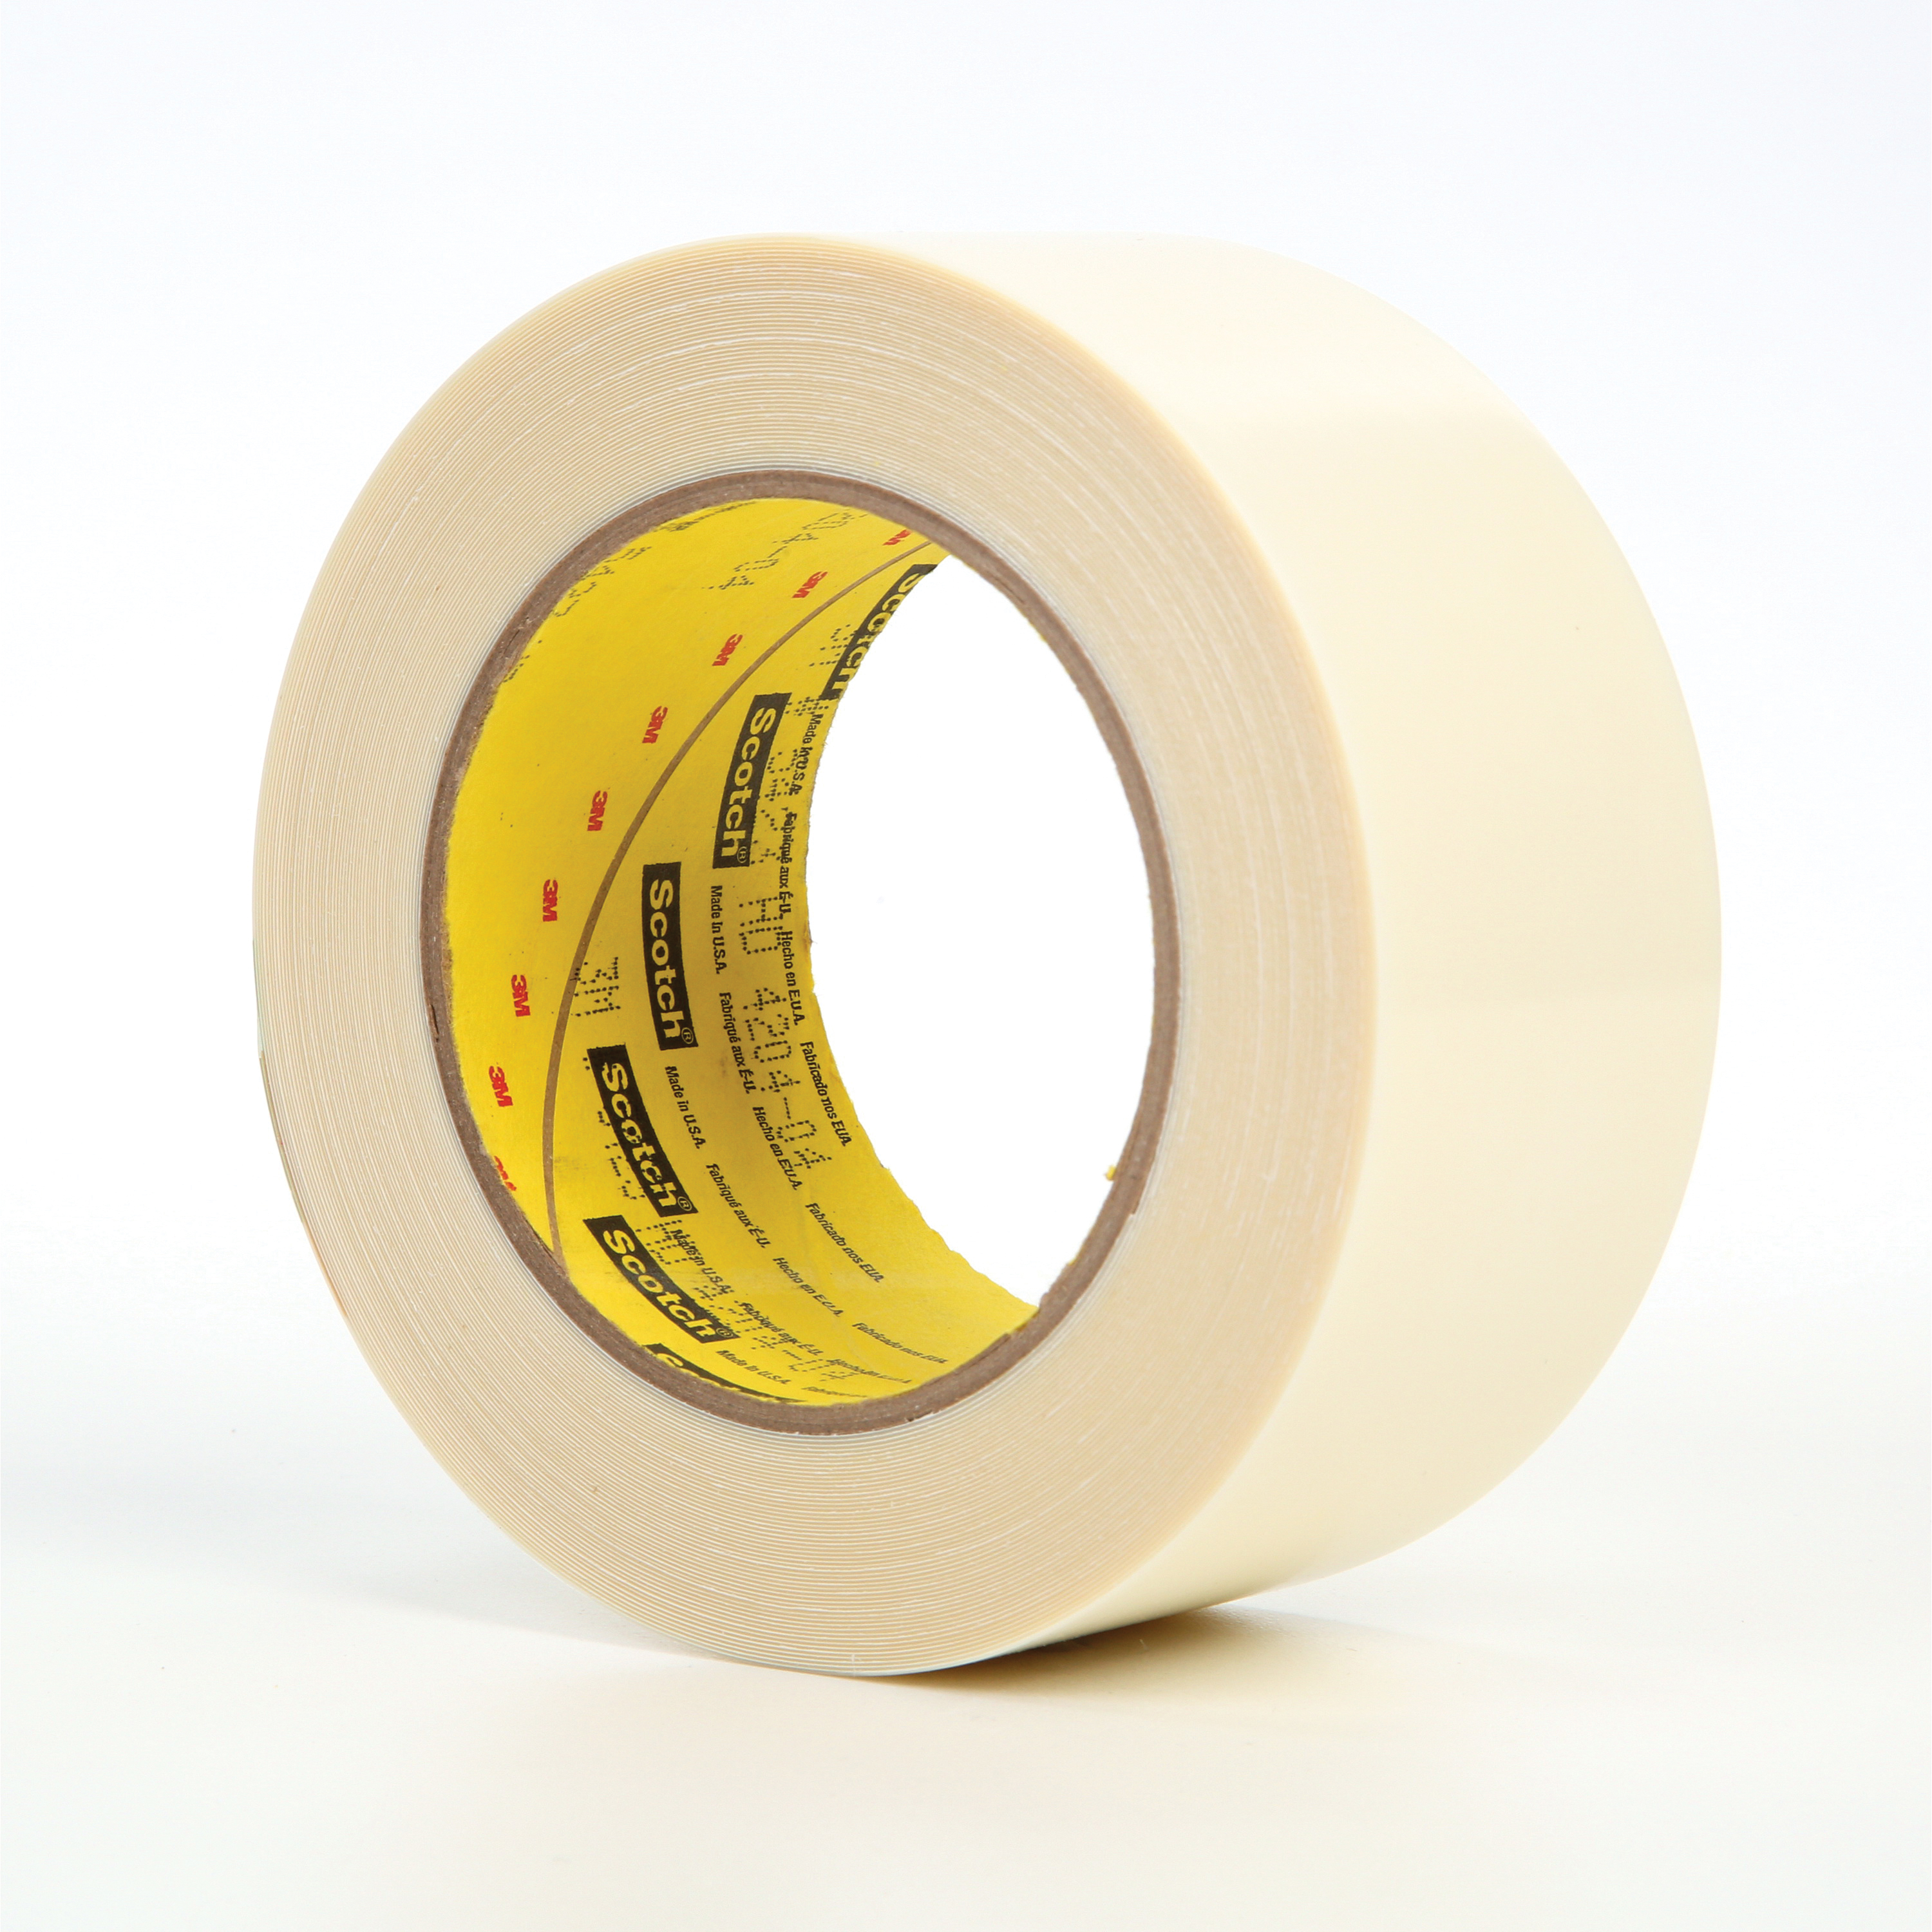 3M™ 021200-07576 Film Tape, 18 yd L x 2 in W, 11.7 mil THK, Rubber Adhesive, 10 mil UHMW Polyethylene Backing, Transparent